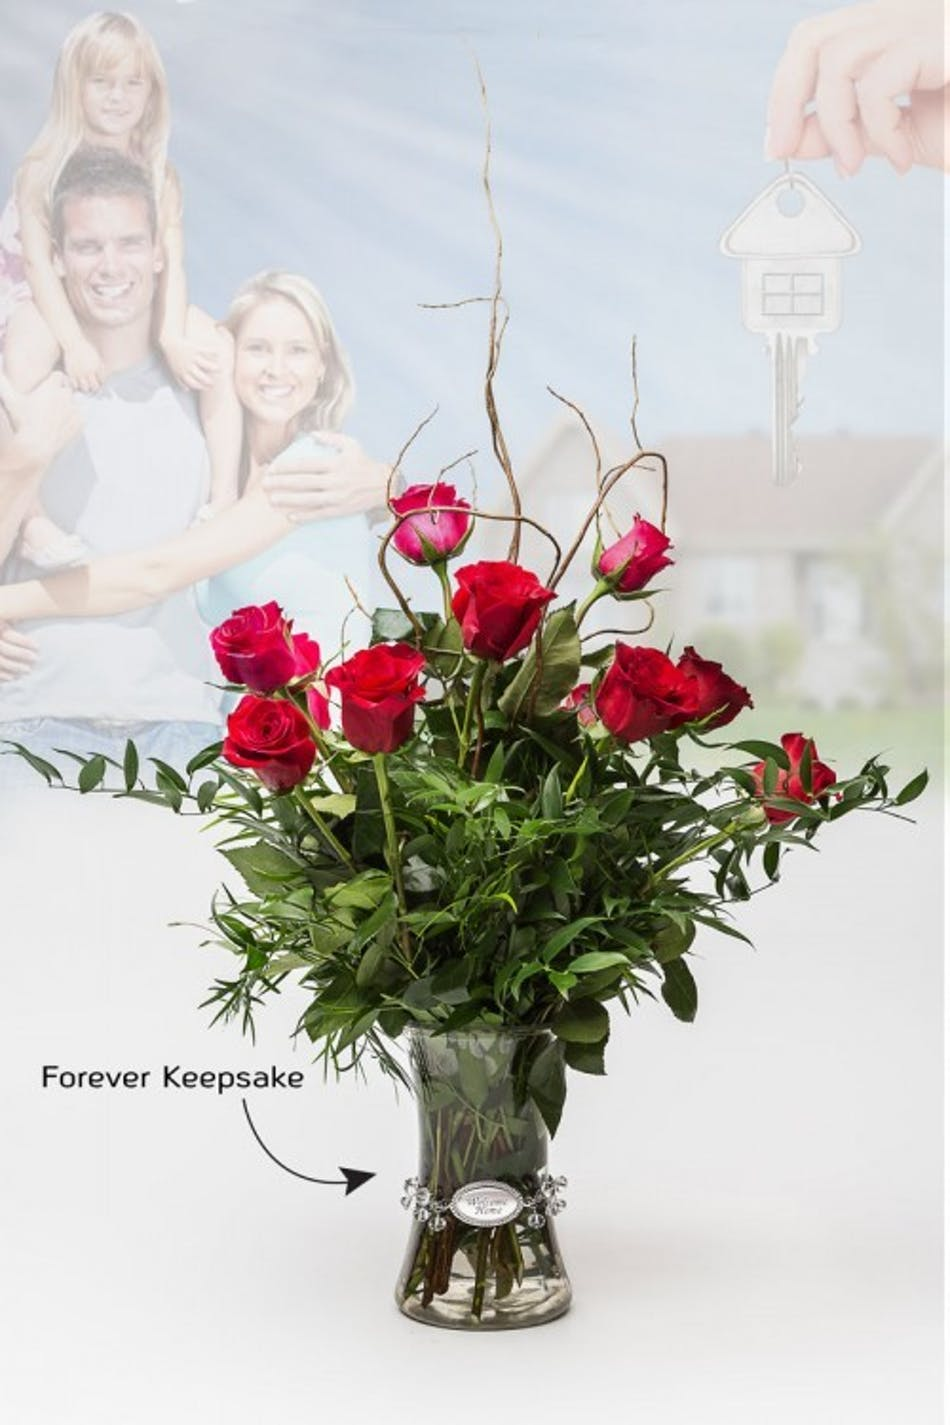 Vase Of Life Welcome Home Celebrate And Honor All Your Seasons Of